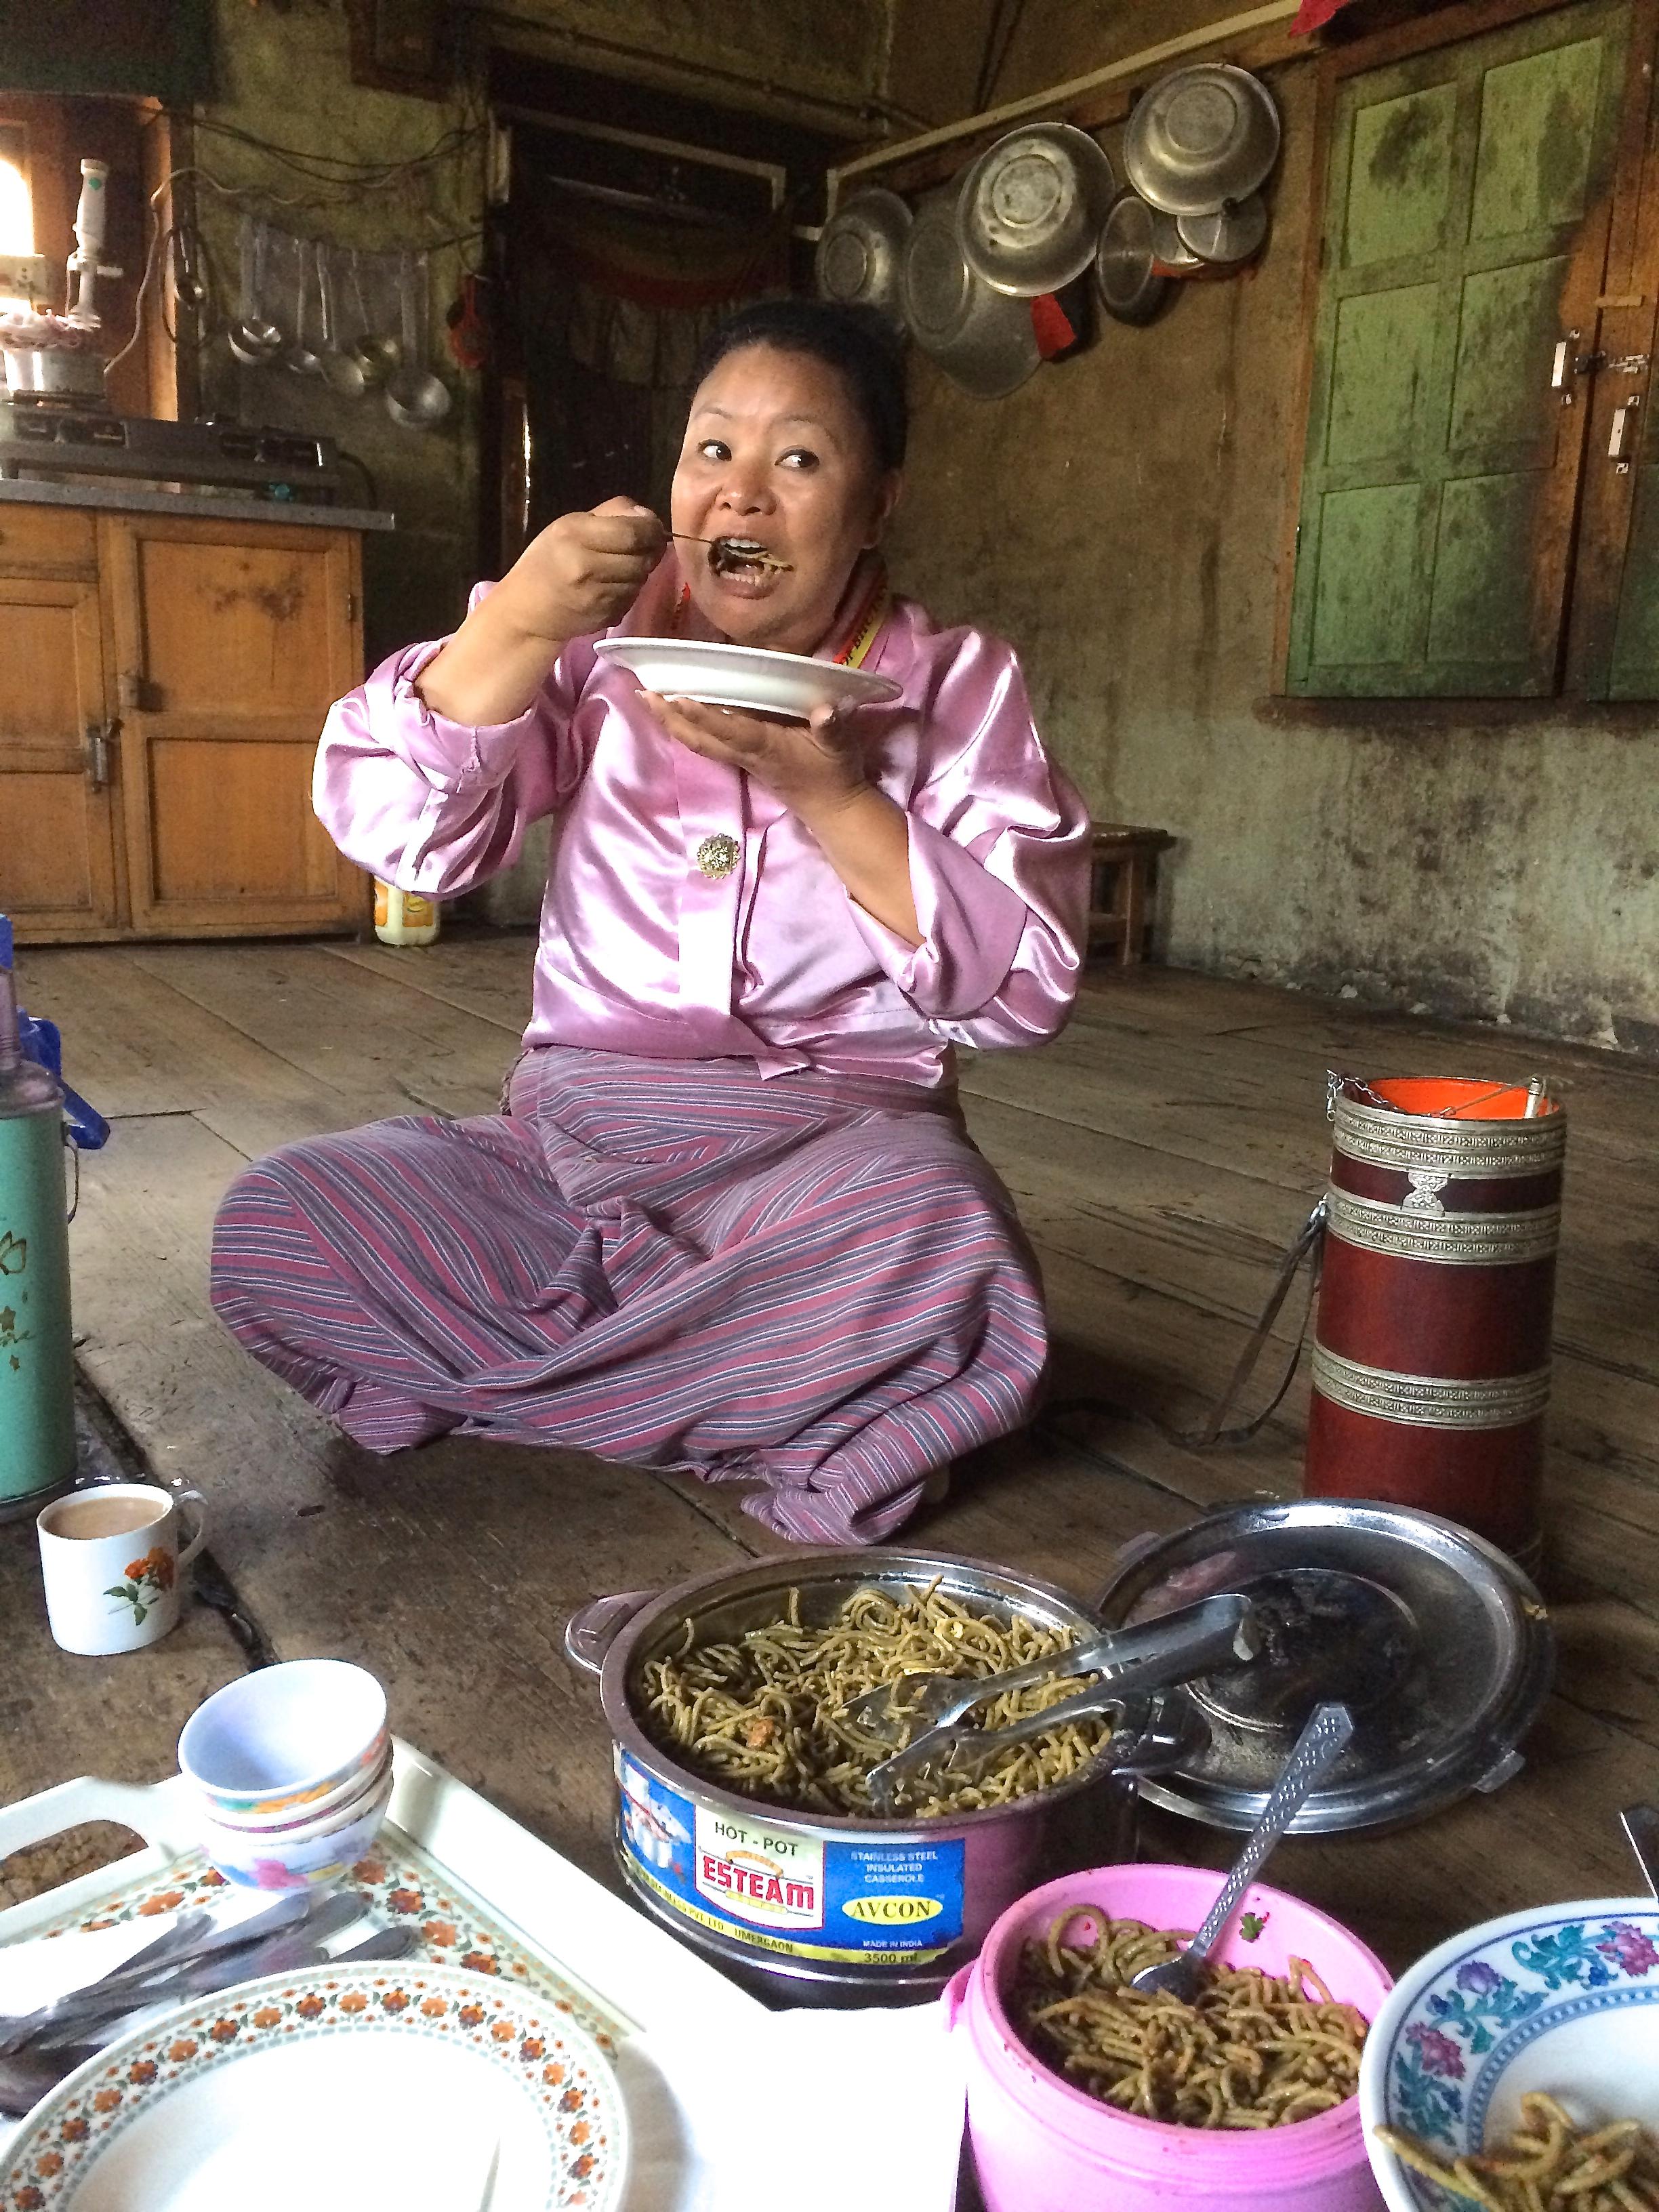 Buckwheat noodles in Bhutan